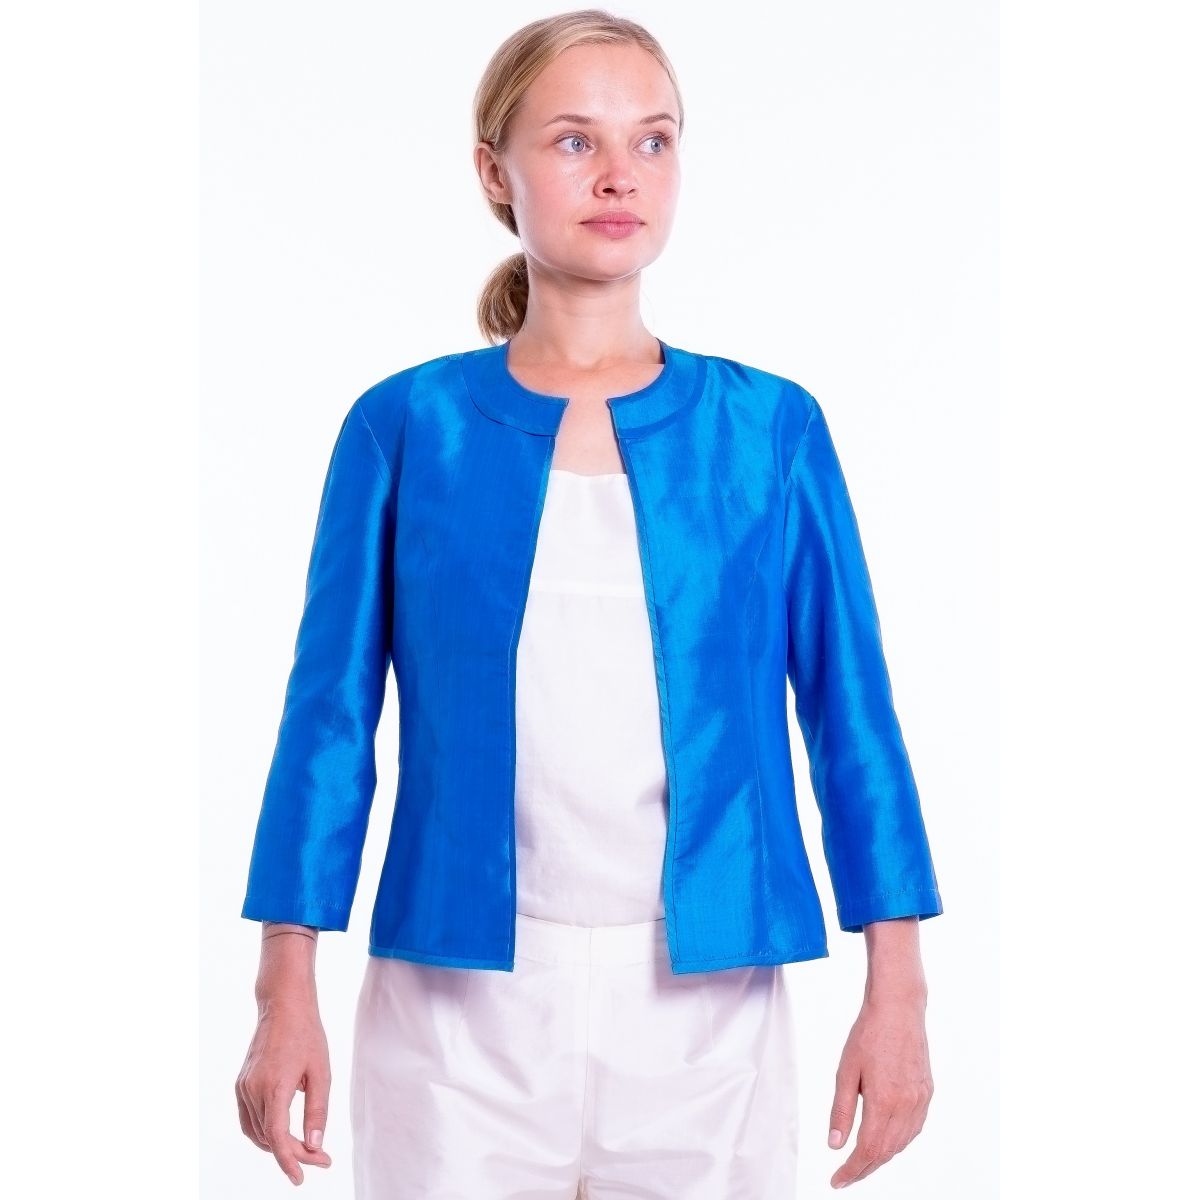 blue jacket in natural silk, round flat collar, three-quarter sleeves, no buttons